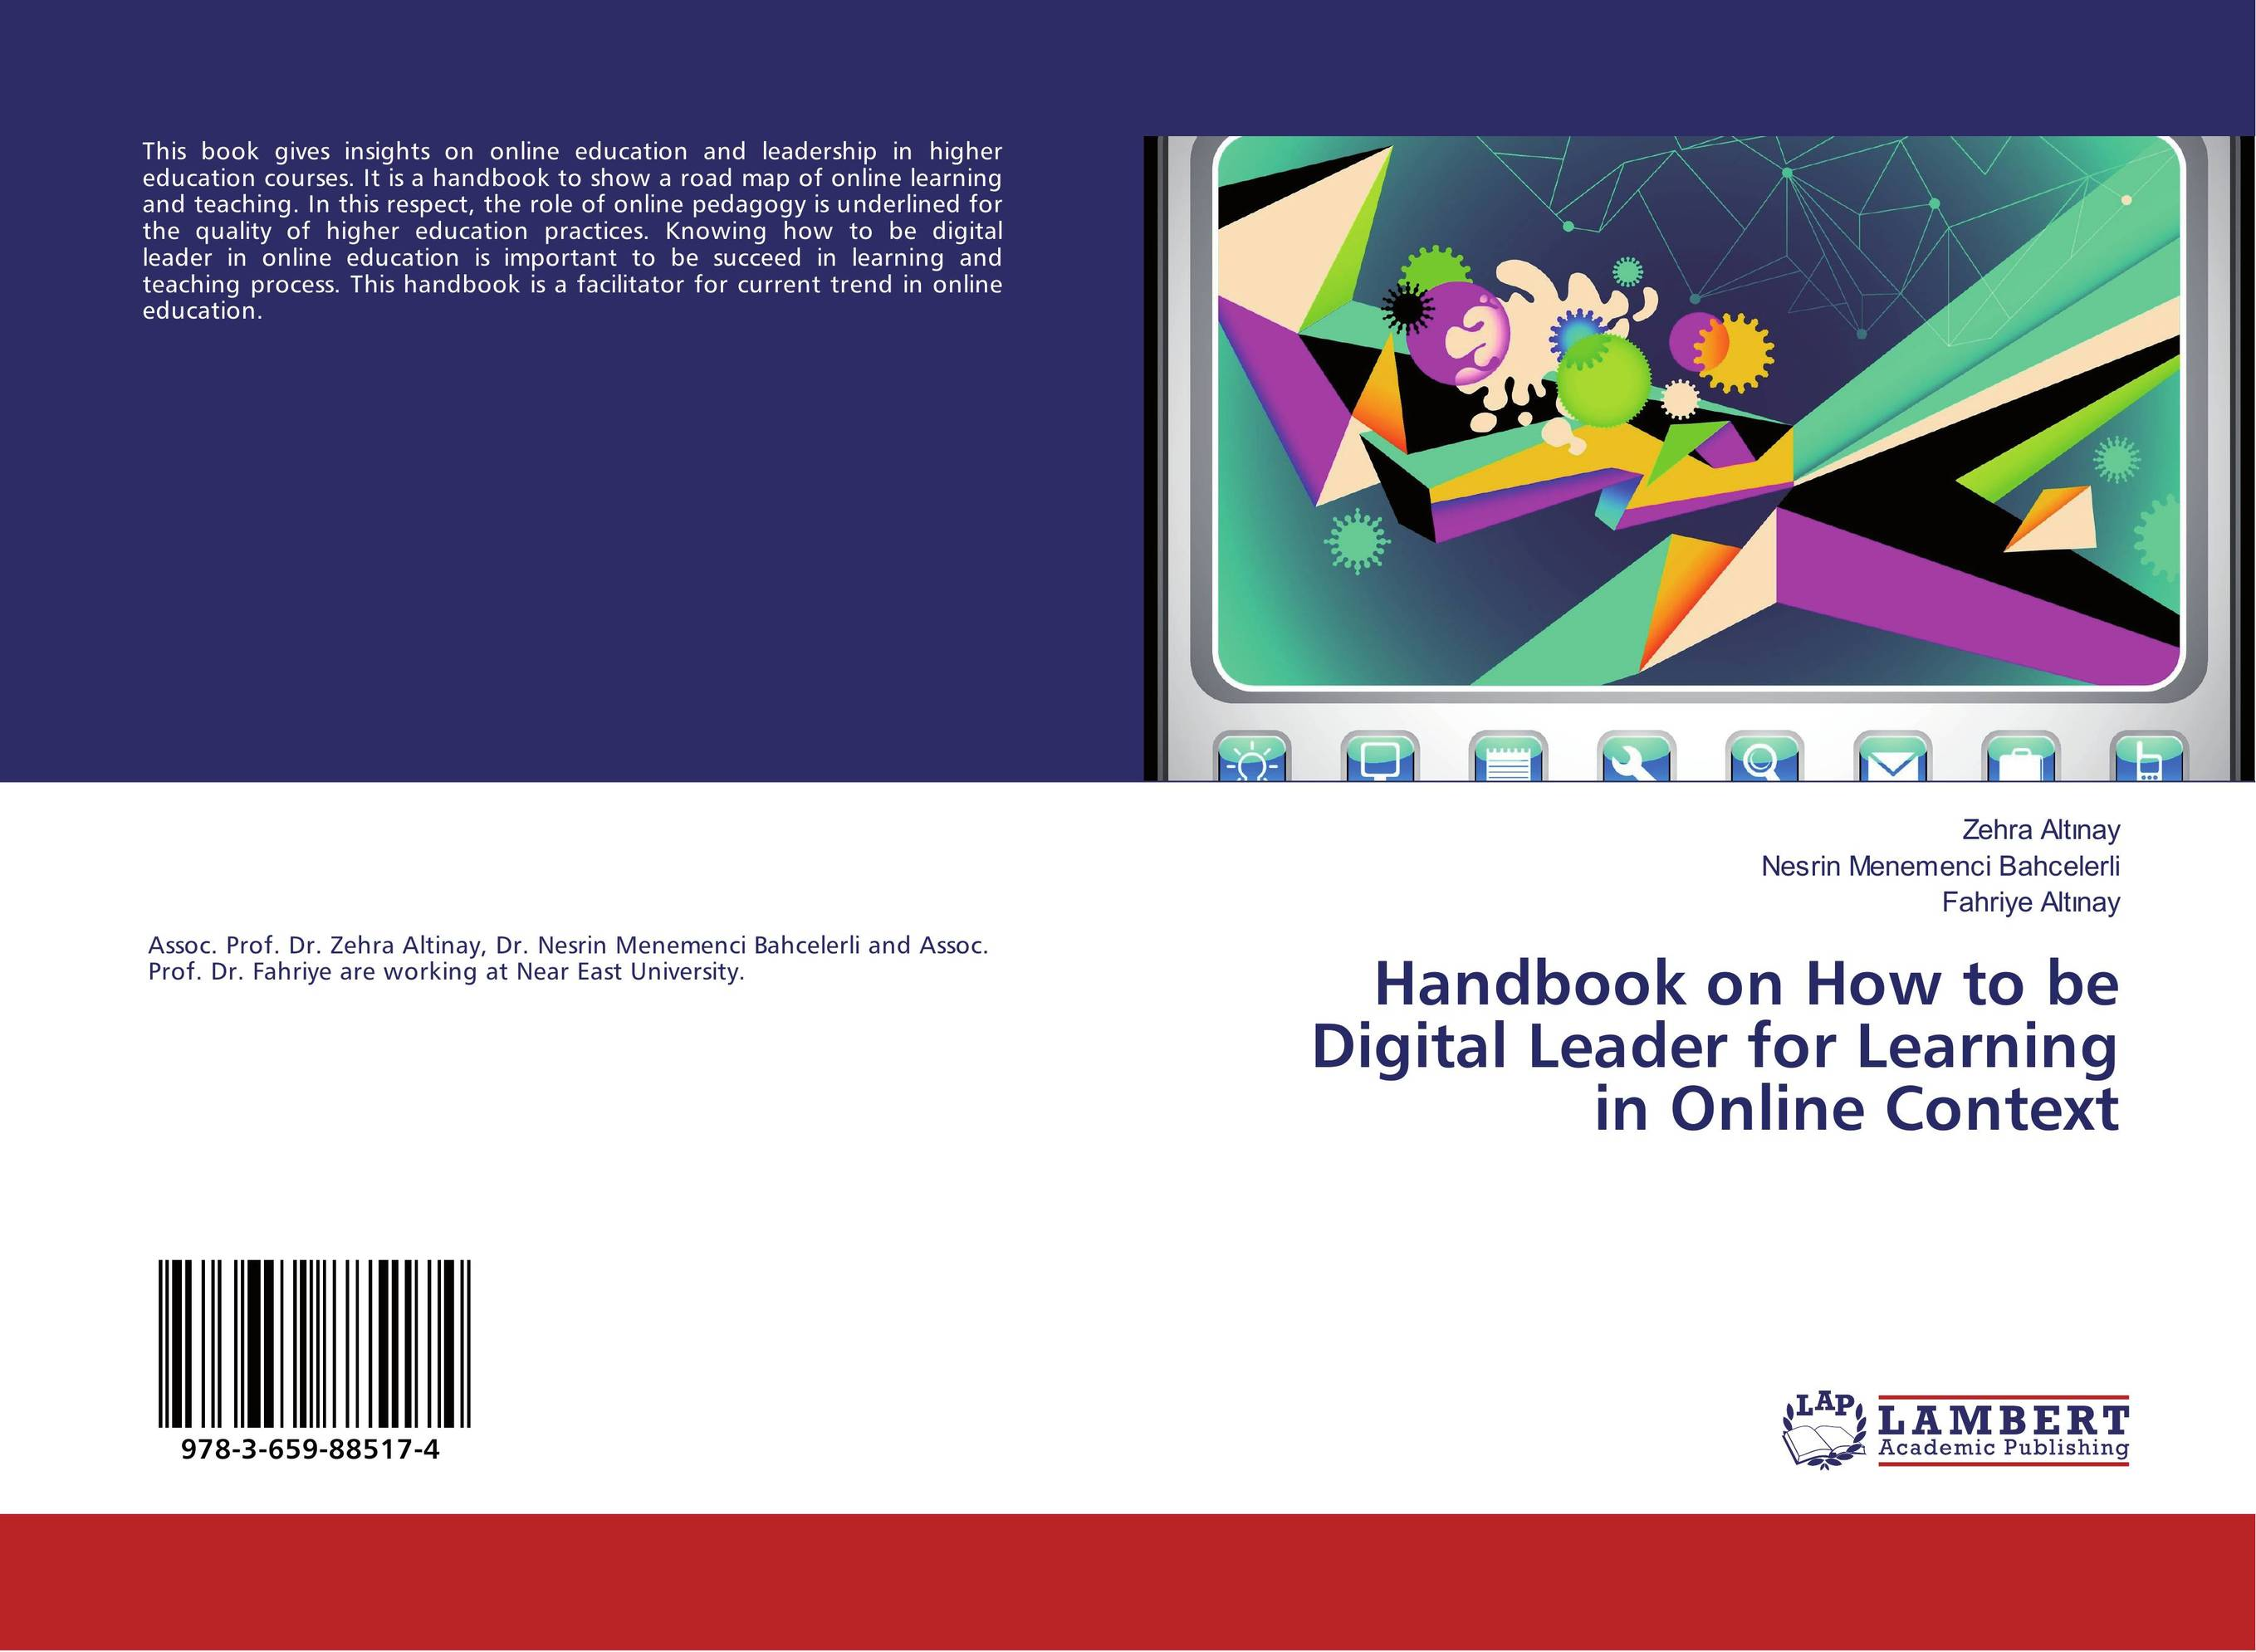 Handbook on How to be Digital Leader for Learning in Online Context james m kouzes learning leadership the five fundamentals of becoming an exemplary leader